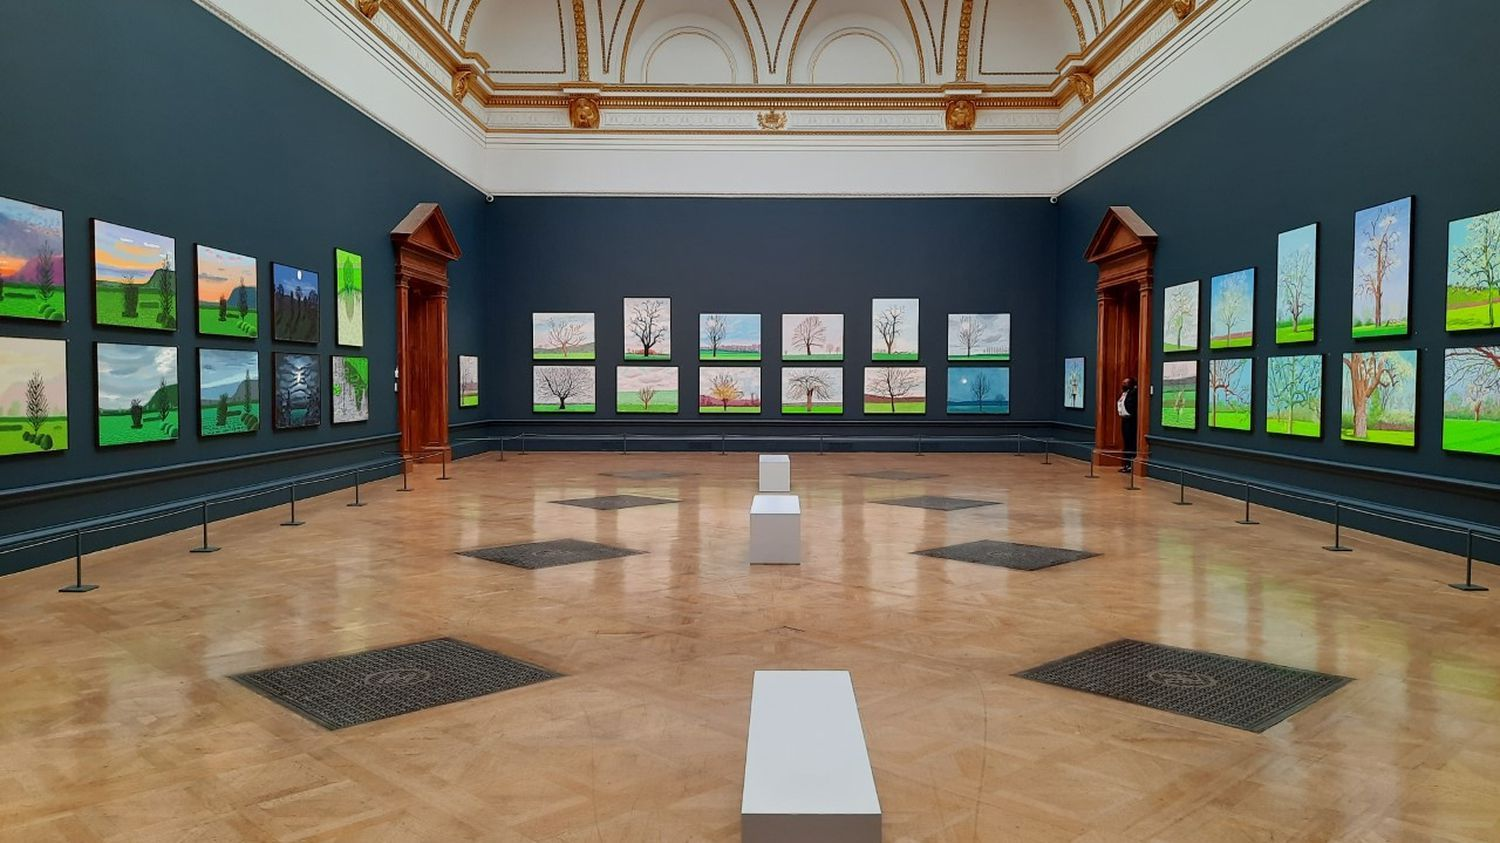 David Hockney: The Arrival of Spring, Normandy, 2020 at the Royal Academy of Arts